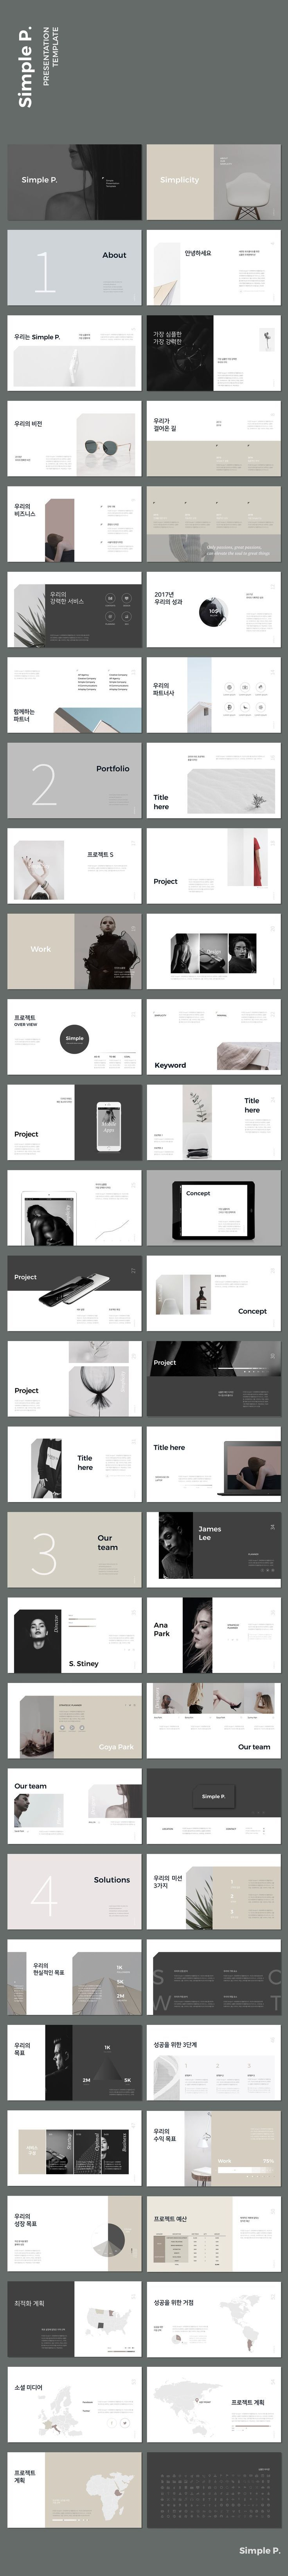 Simple P. PowerPoint Template | Layouts, Template and Ppt design